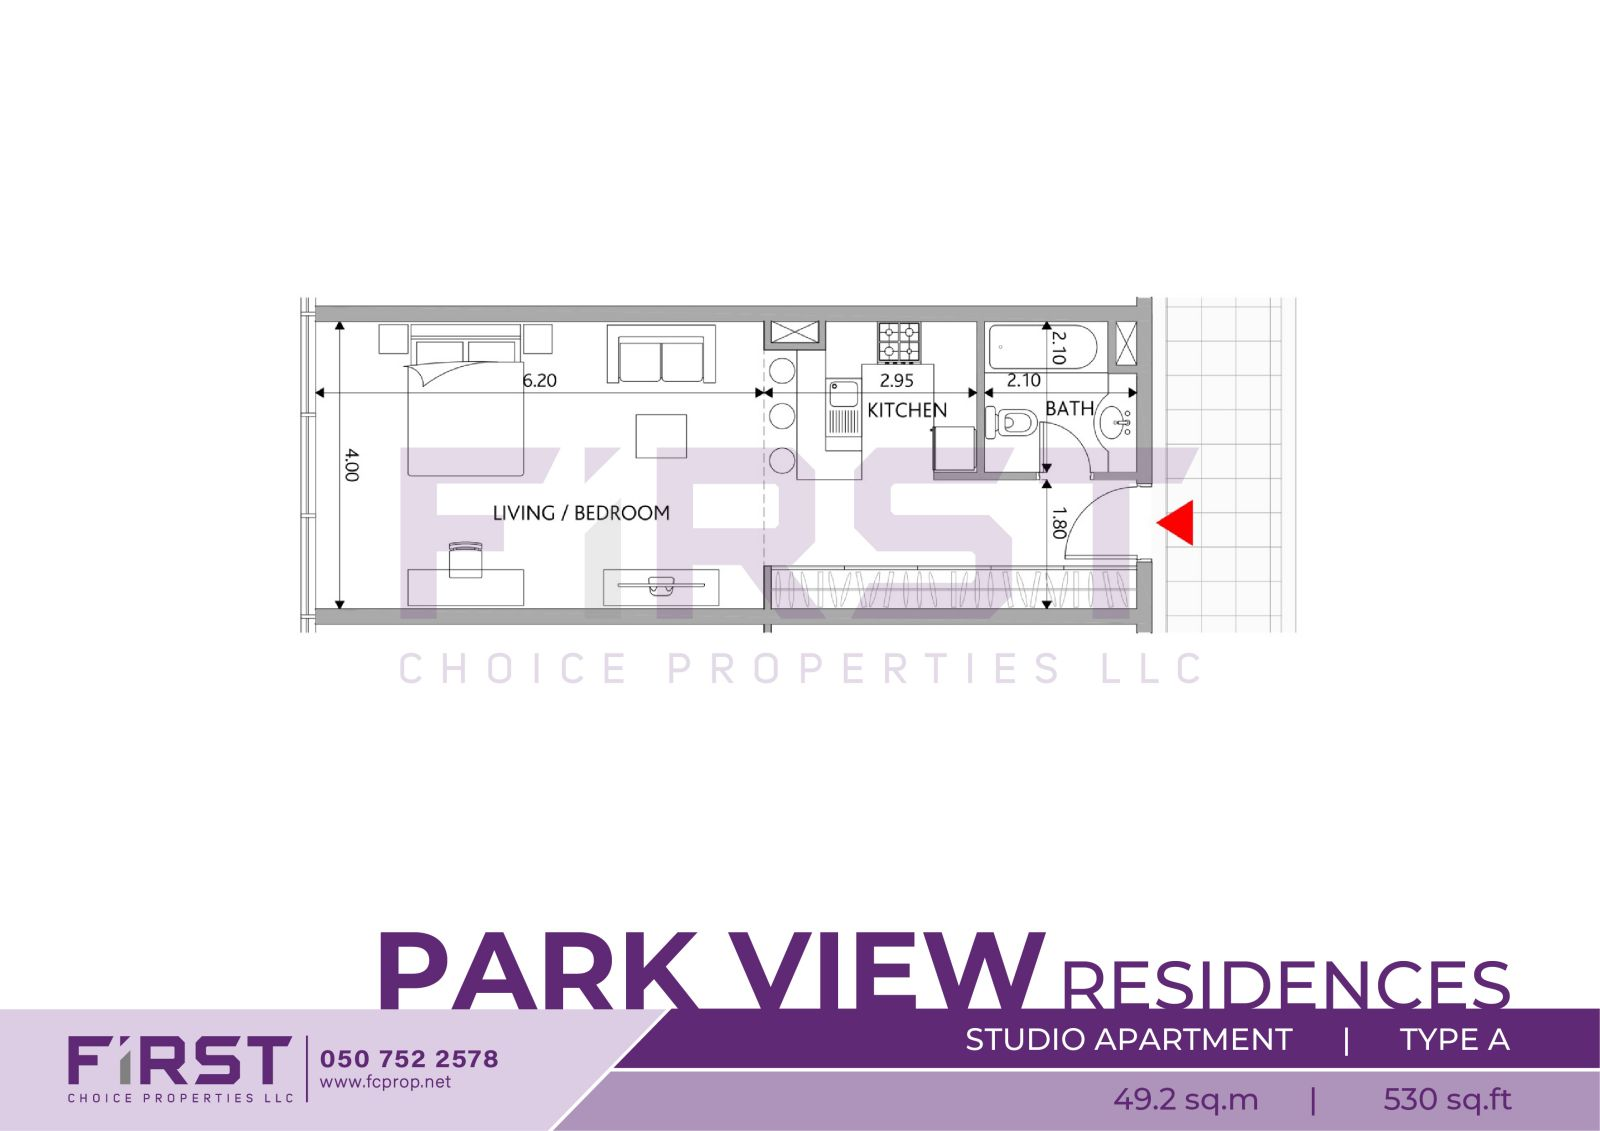 Floor Plan of Studio Apartment Type A in Park View Residences Saadiyat Island Abu Dhabi UAE 49.2 sq.m 530 sq.ft.jpg